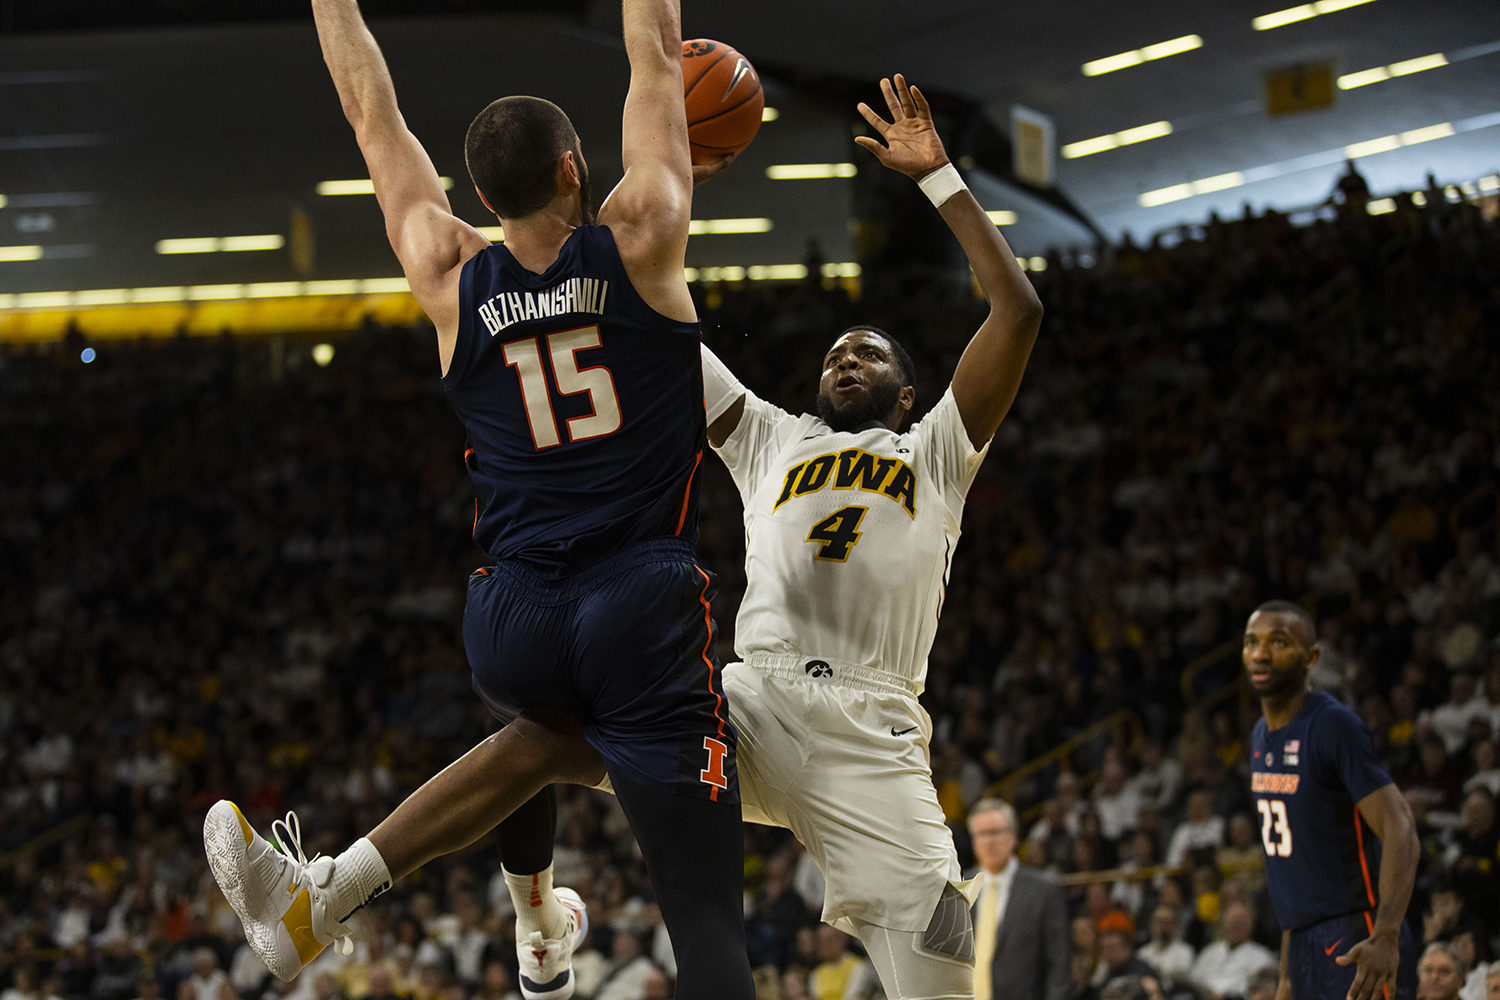 Iowa guard Isaiah Moss attempts a layup during the Iowa/Illinois men's basketball game at Carver-Hawkeye Arena on Sunday, January 20, 2019. The Hawkeyes defeated the Fighting Illini, 95-71.